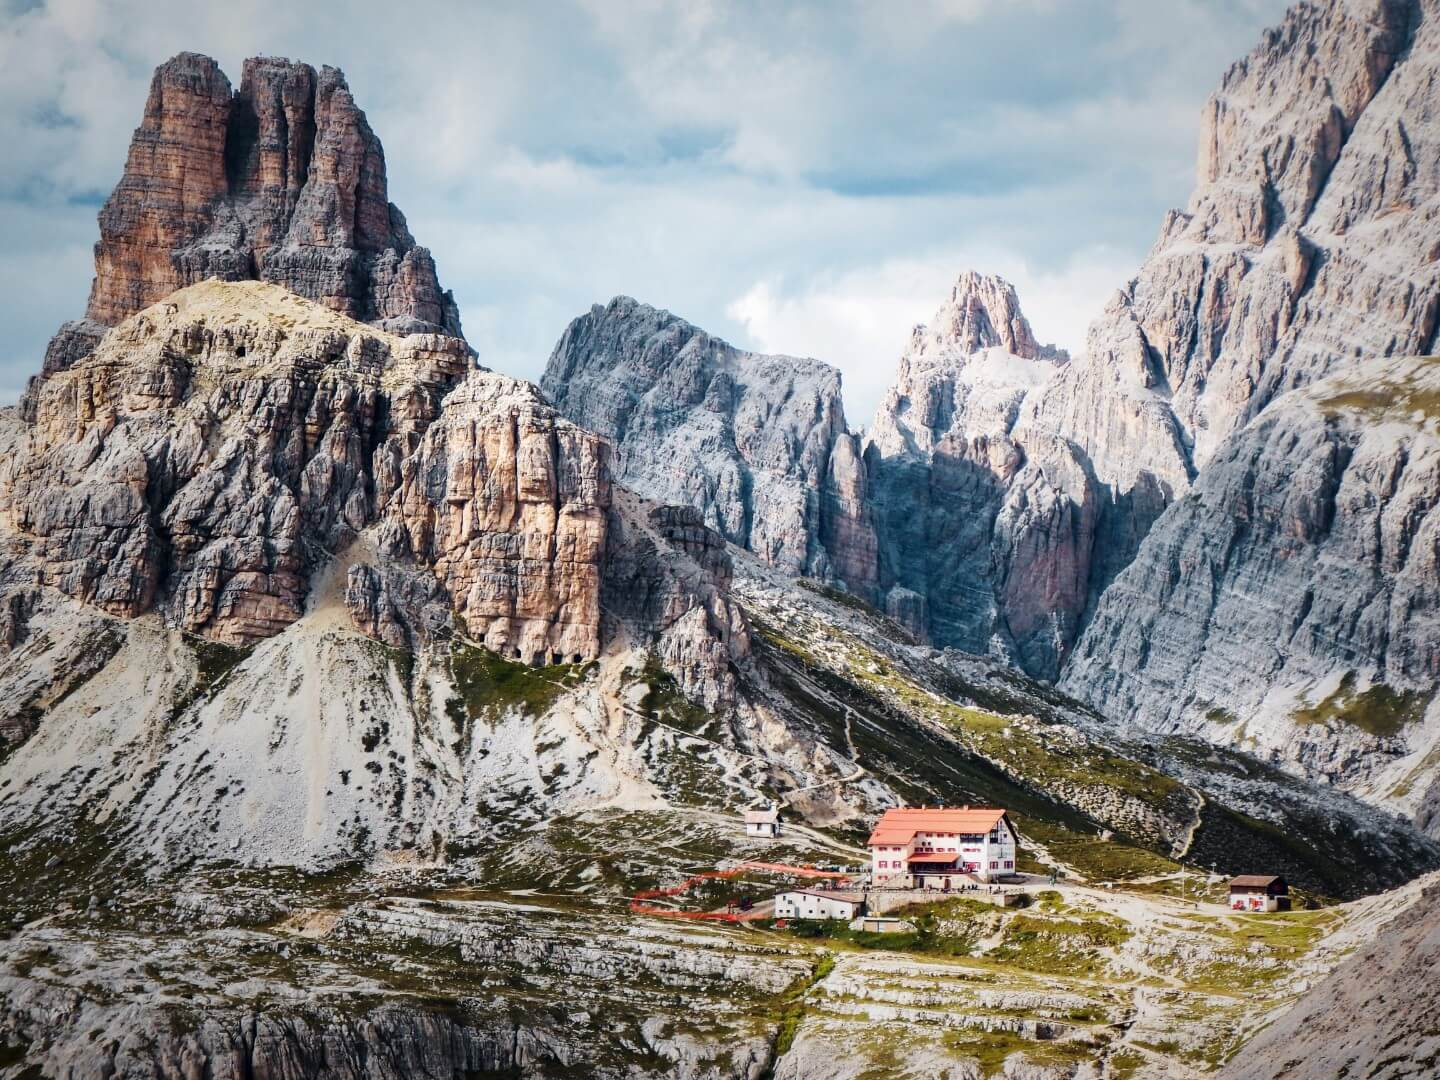 Dolomites Travel Guide - Hiking in Tre Cime Natural Park